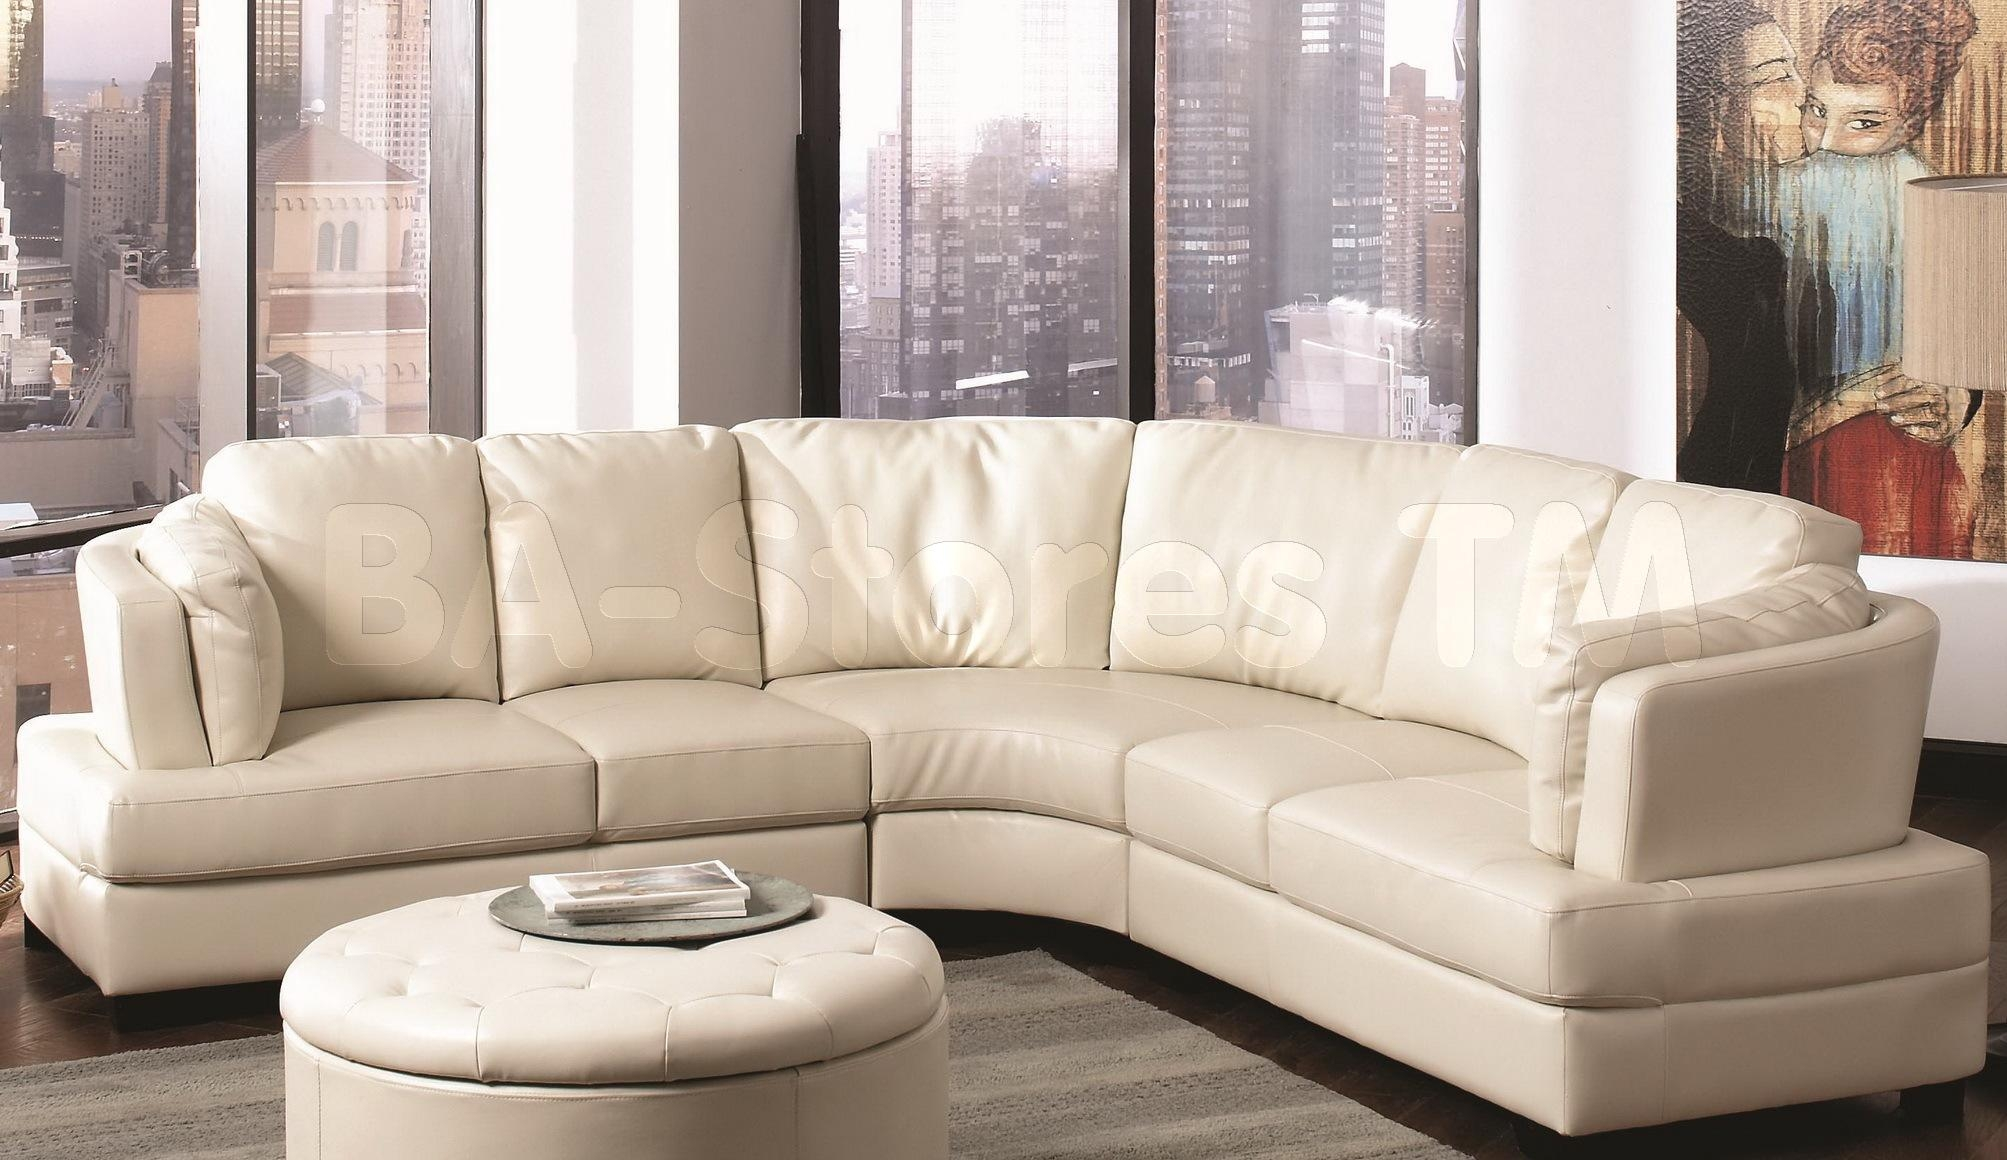 vintage leather sectional sofa rounded arms 20 photos sofas ideas